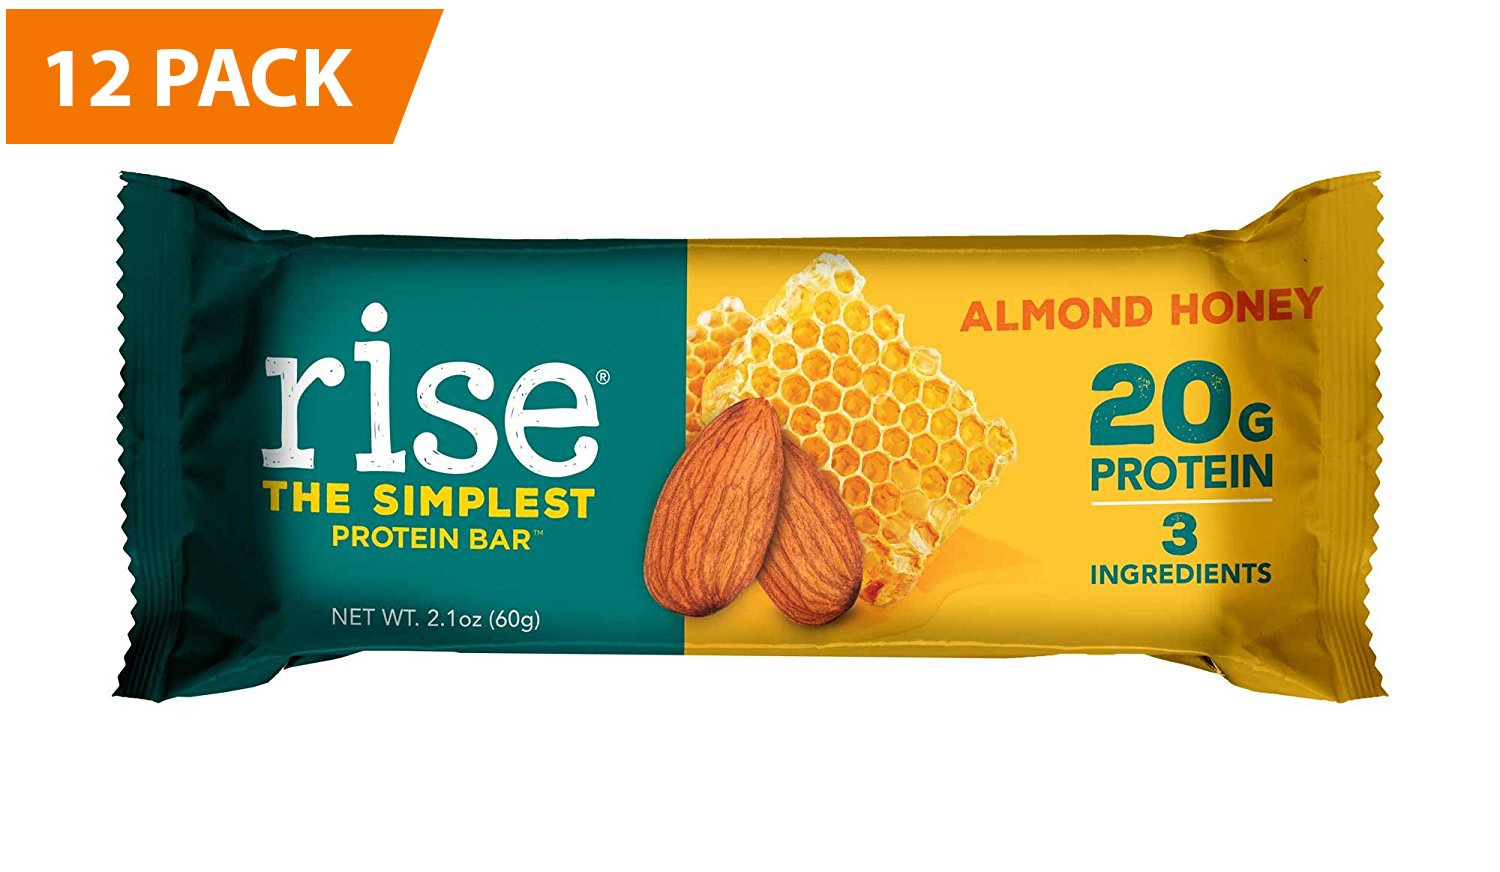 RiseBar Non-GMO, Gluten Free, Soy Free, Real Whole Food, Whey Protein Bar (20g), No Added Sugar, Almond Honey High Protein Bar with Fiber, Potassium, Natural Vitamins & Nutrients 2.1oz, (12 Count)